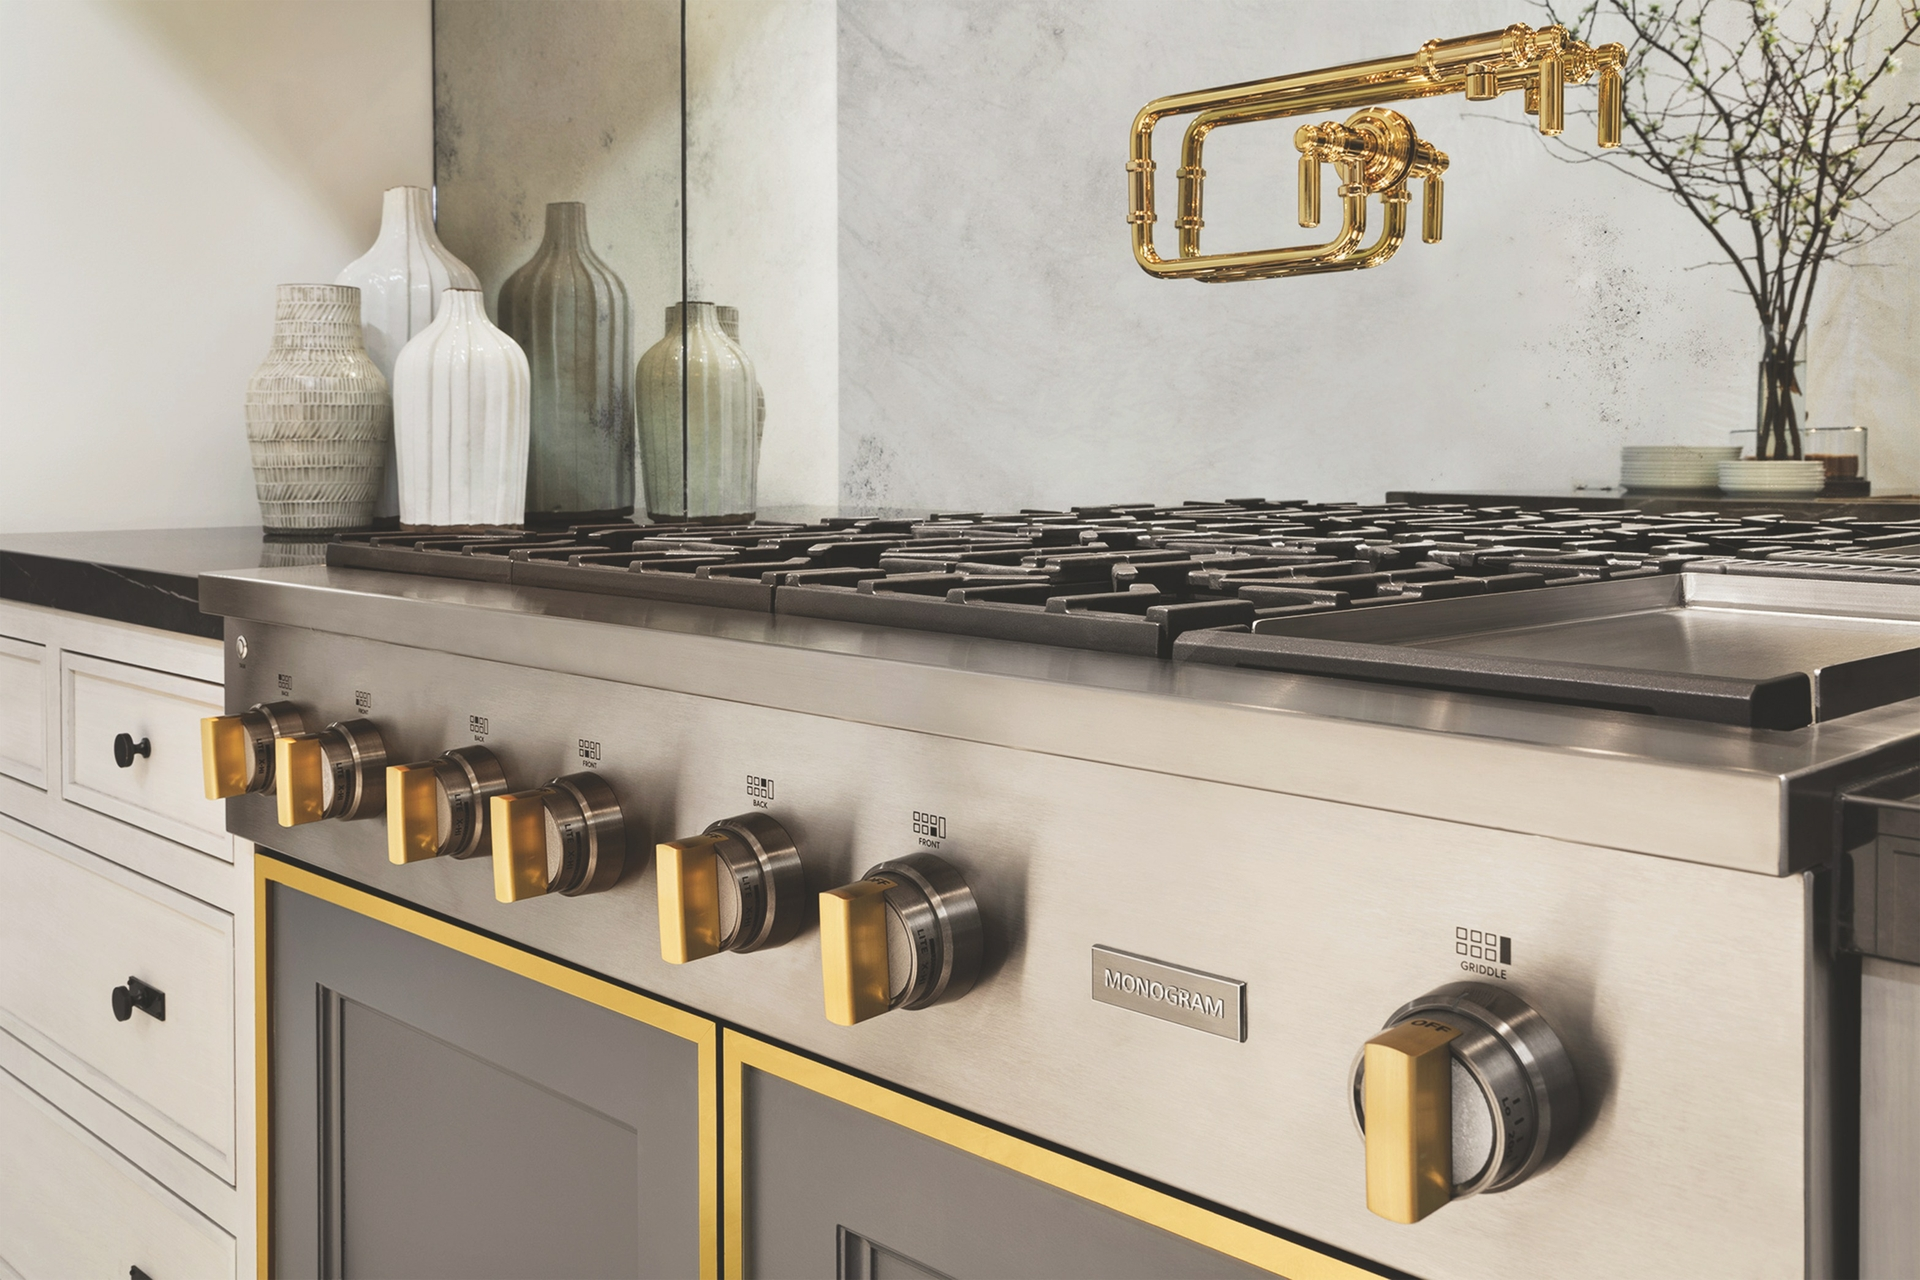 Monogram Statement Cooktop with Brass Detailing